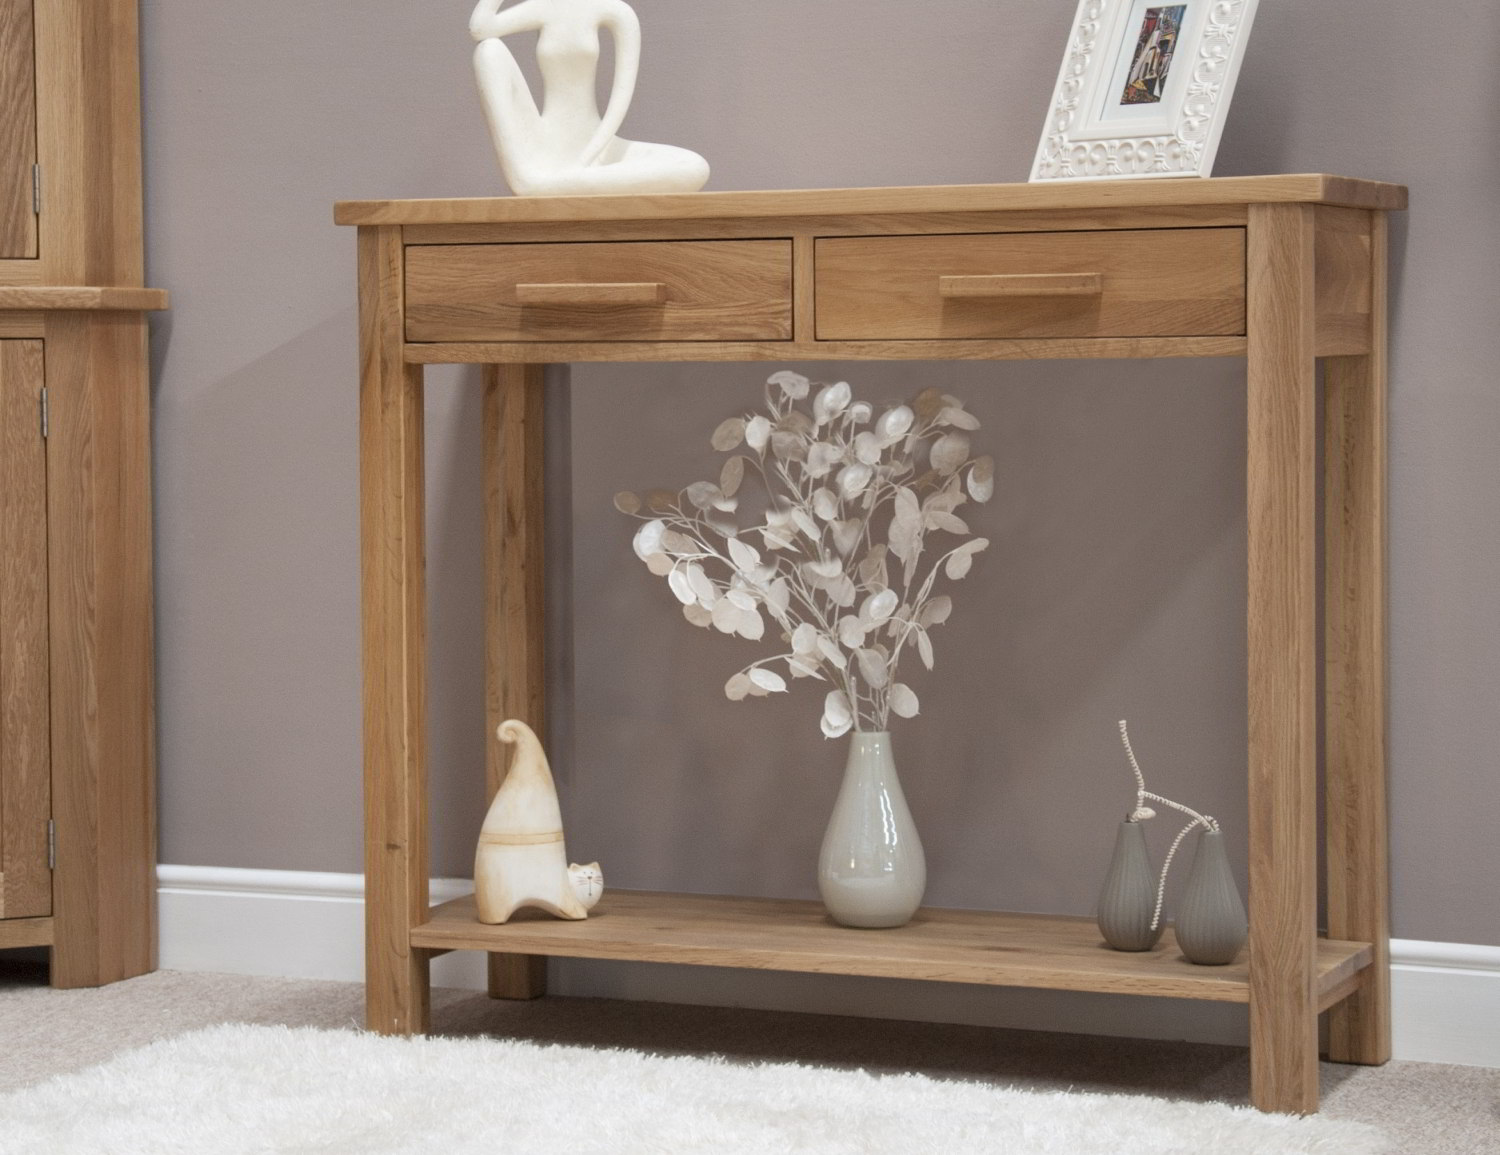 Eton solid oak modern furniture hallway hall console table for Hall console table